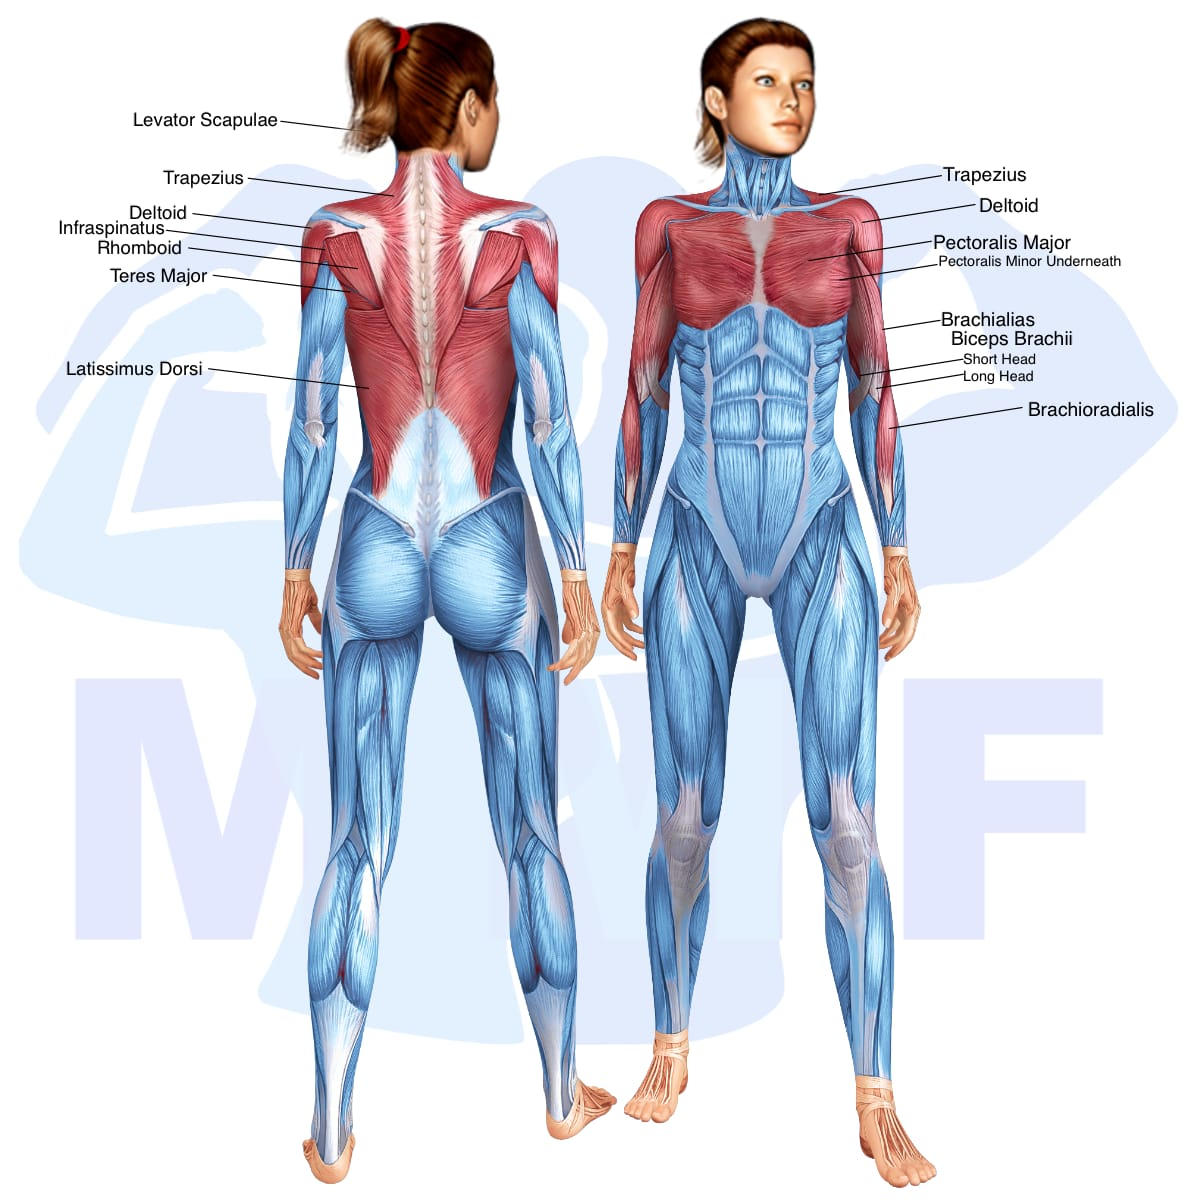 Skeletal muscle systems for a muscular woman, with muscles highlighted in red that are use during resistance band pulldowns.